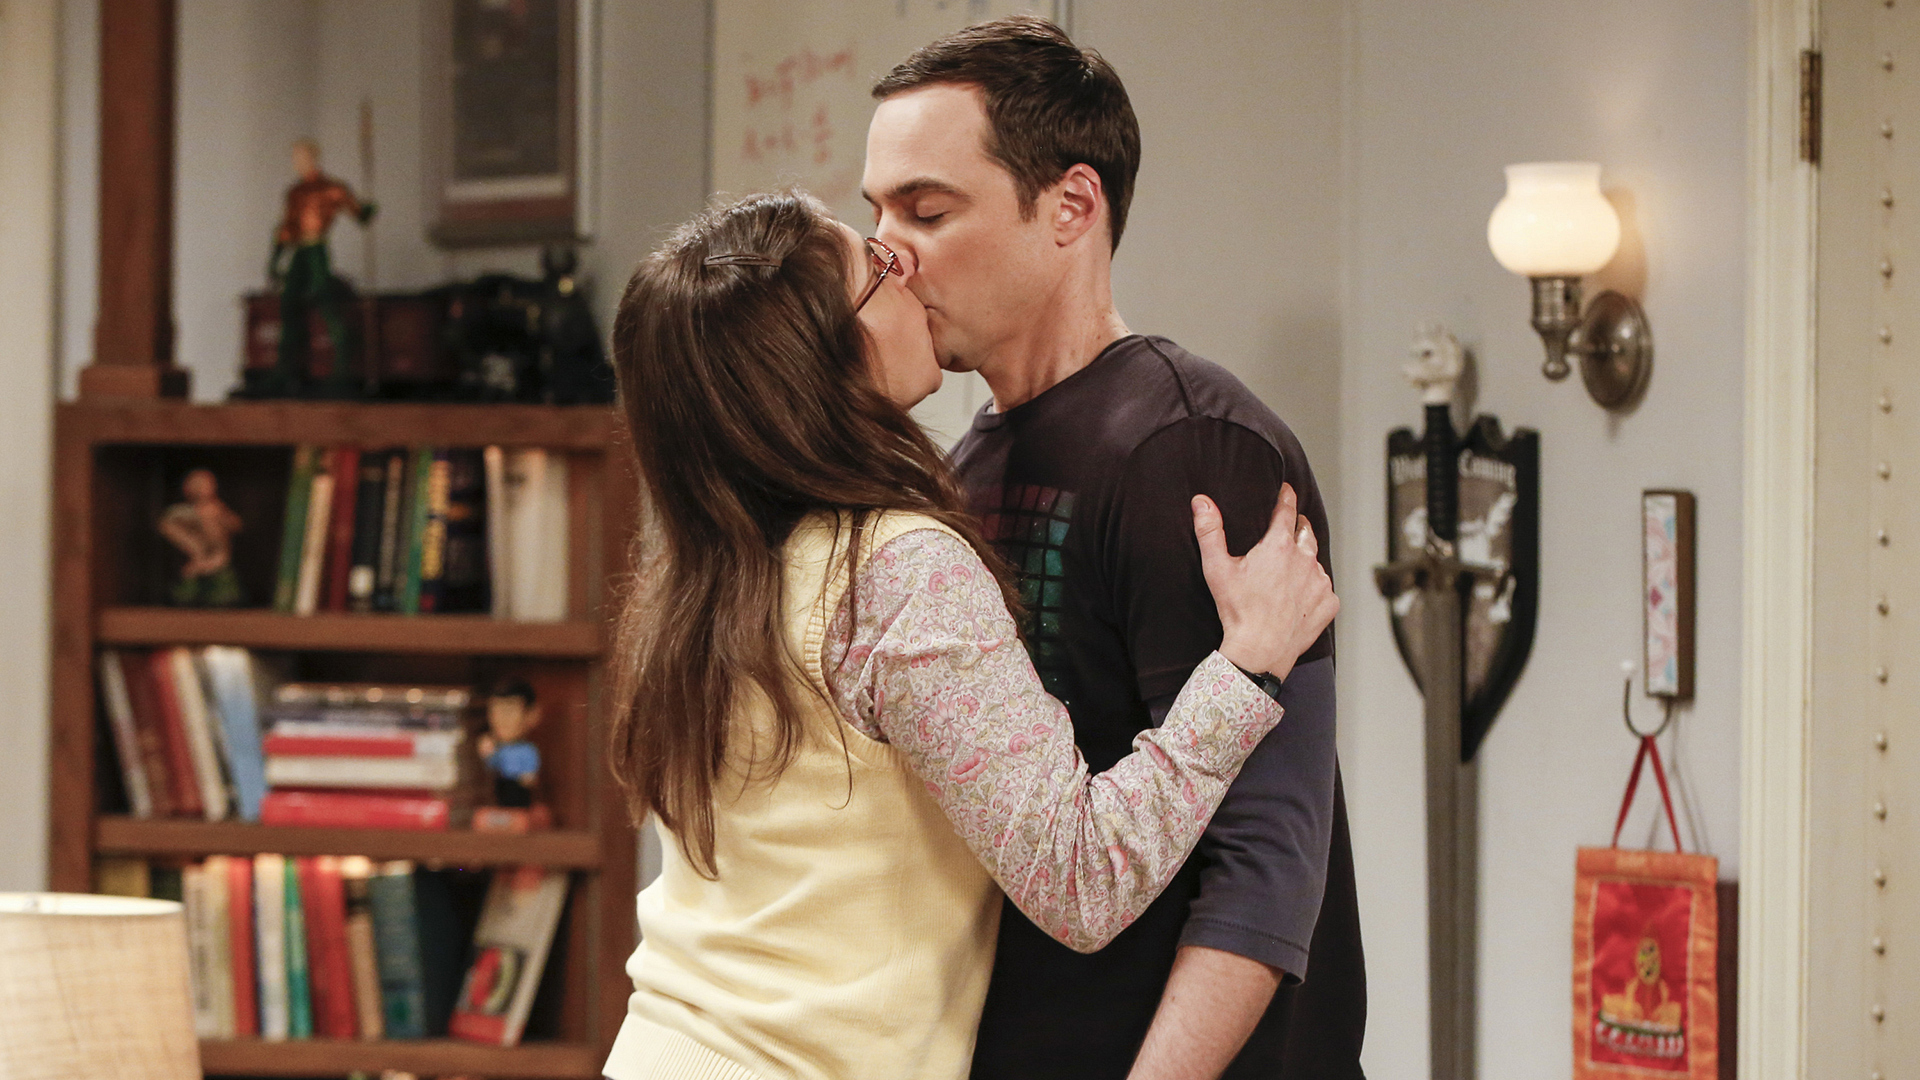 Her first-ever kiss was on TV.